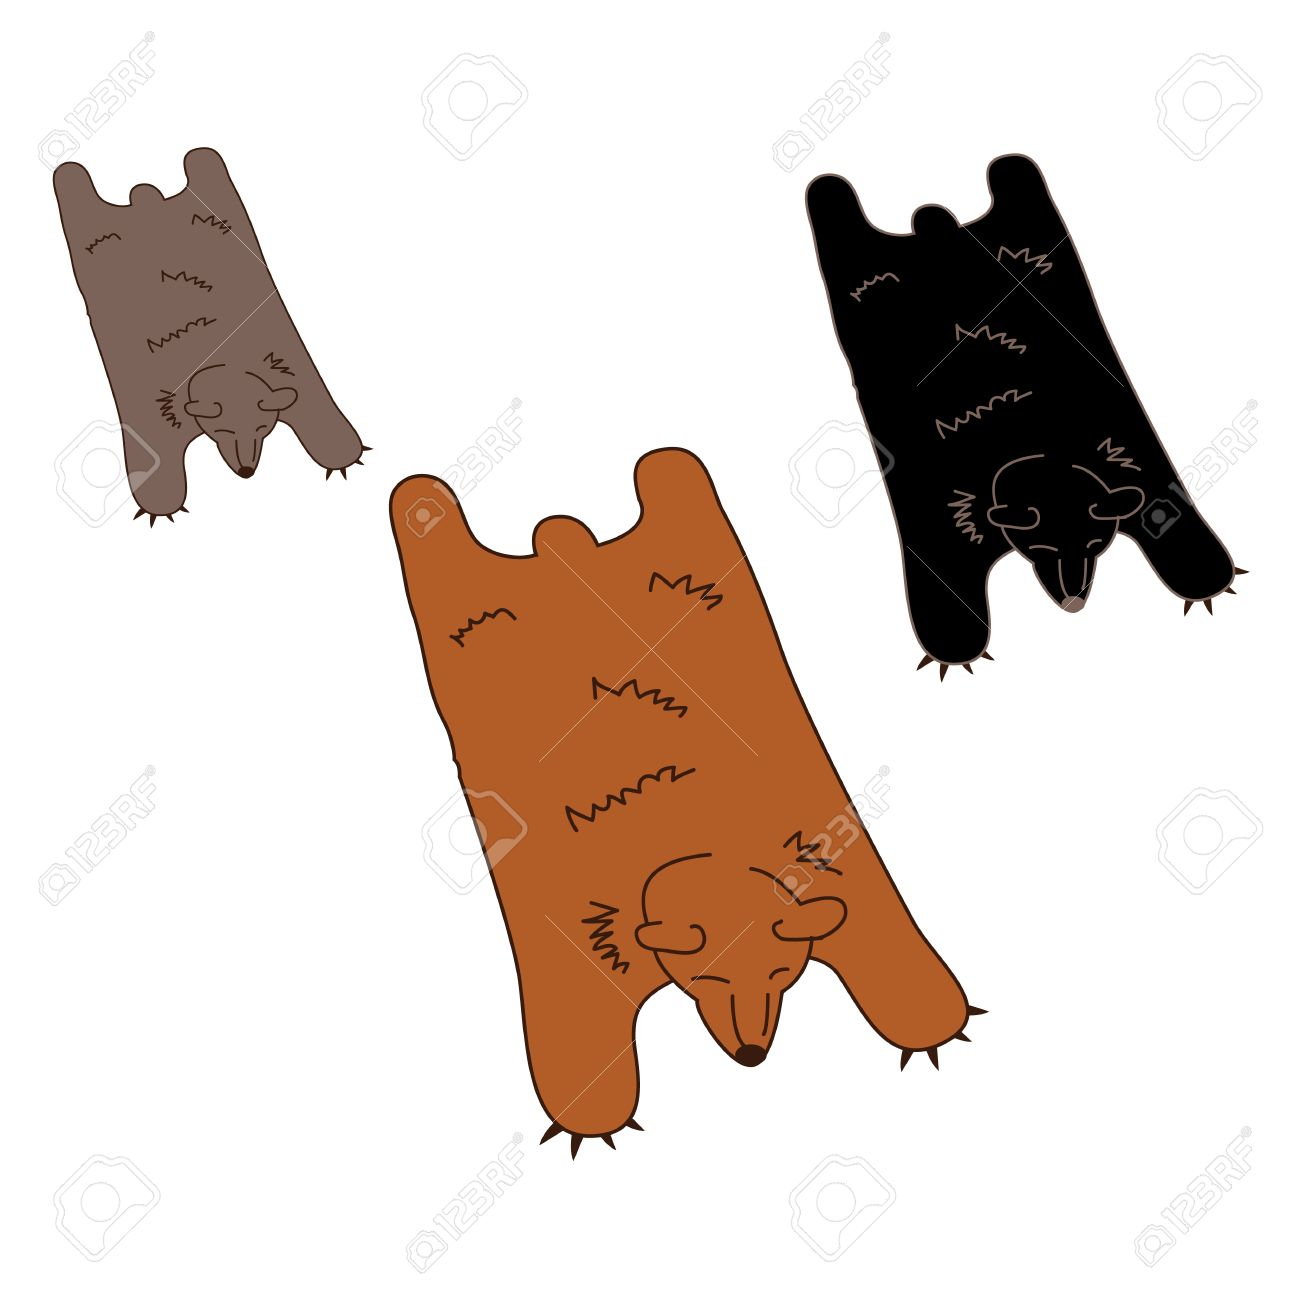 Faux Bearskin Rug Faux Or Fake Leathery Extra Fuzzy Or Furry Bear Skin Rug For